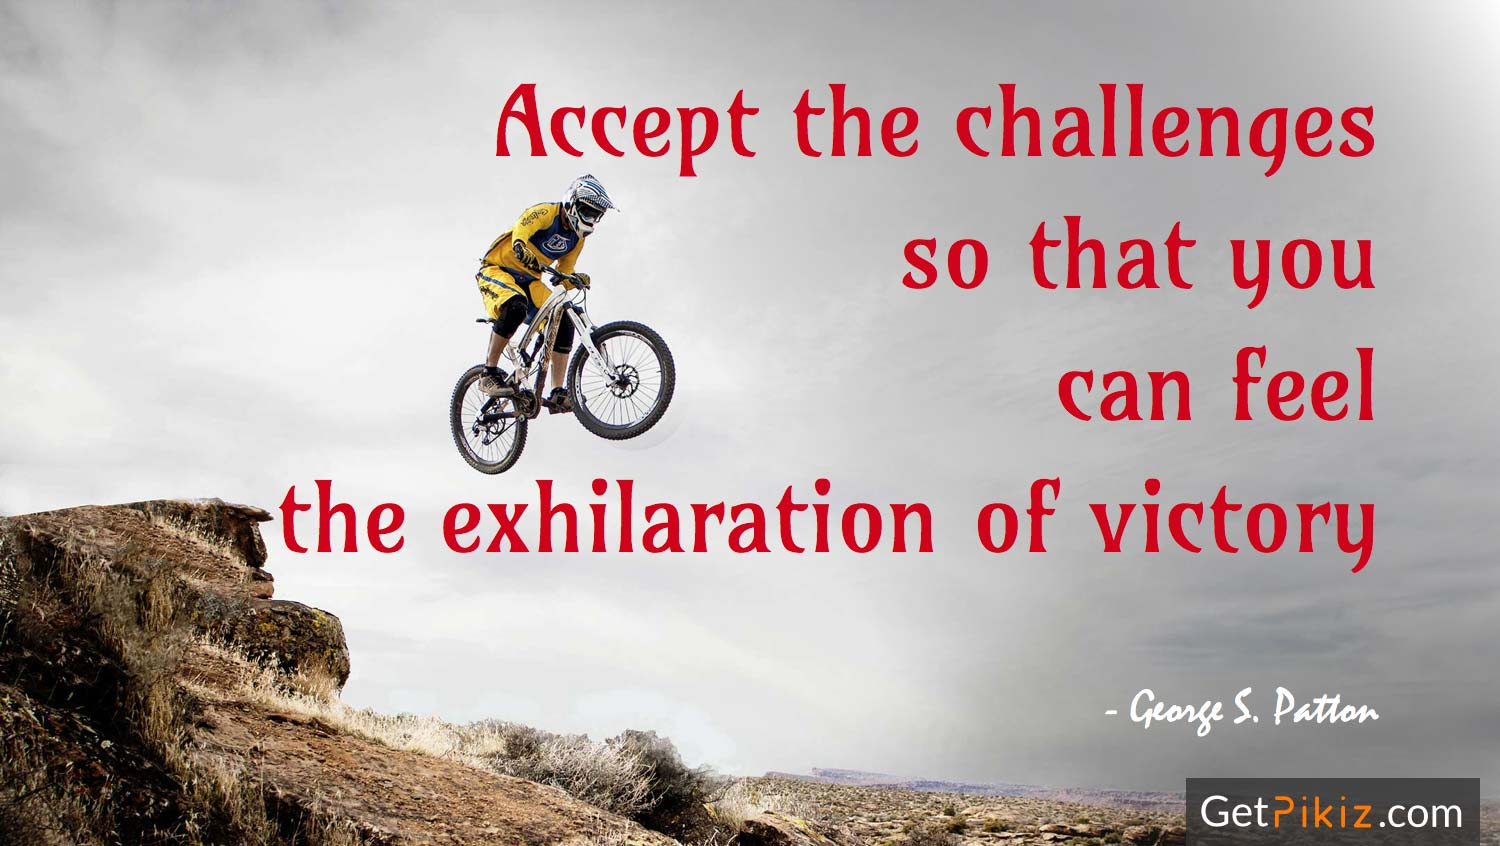 Accept the challenges so that you can feel the exhilaration of victory. - George S. Patton